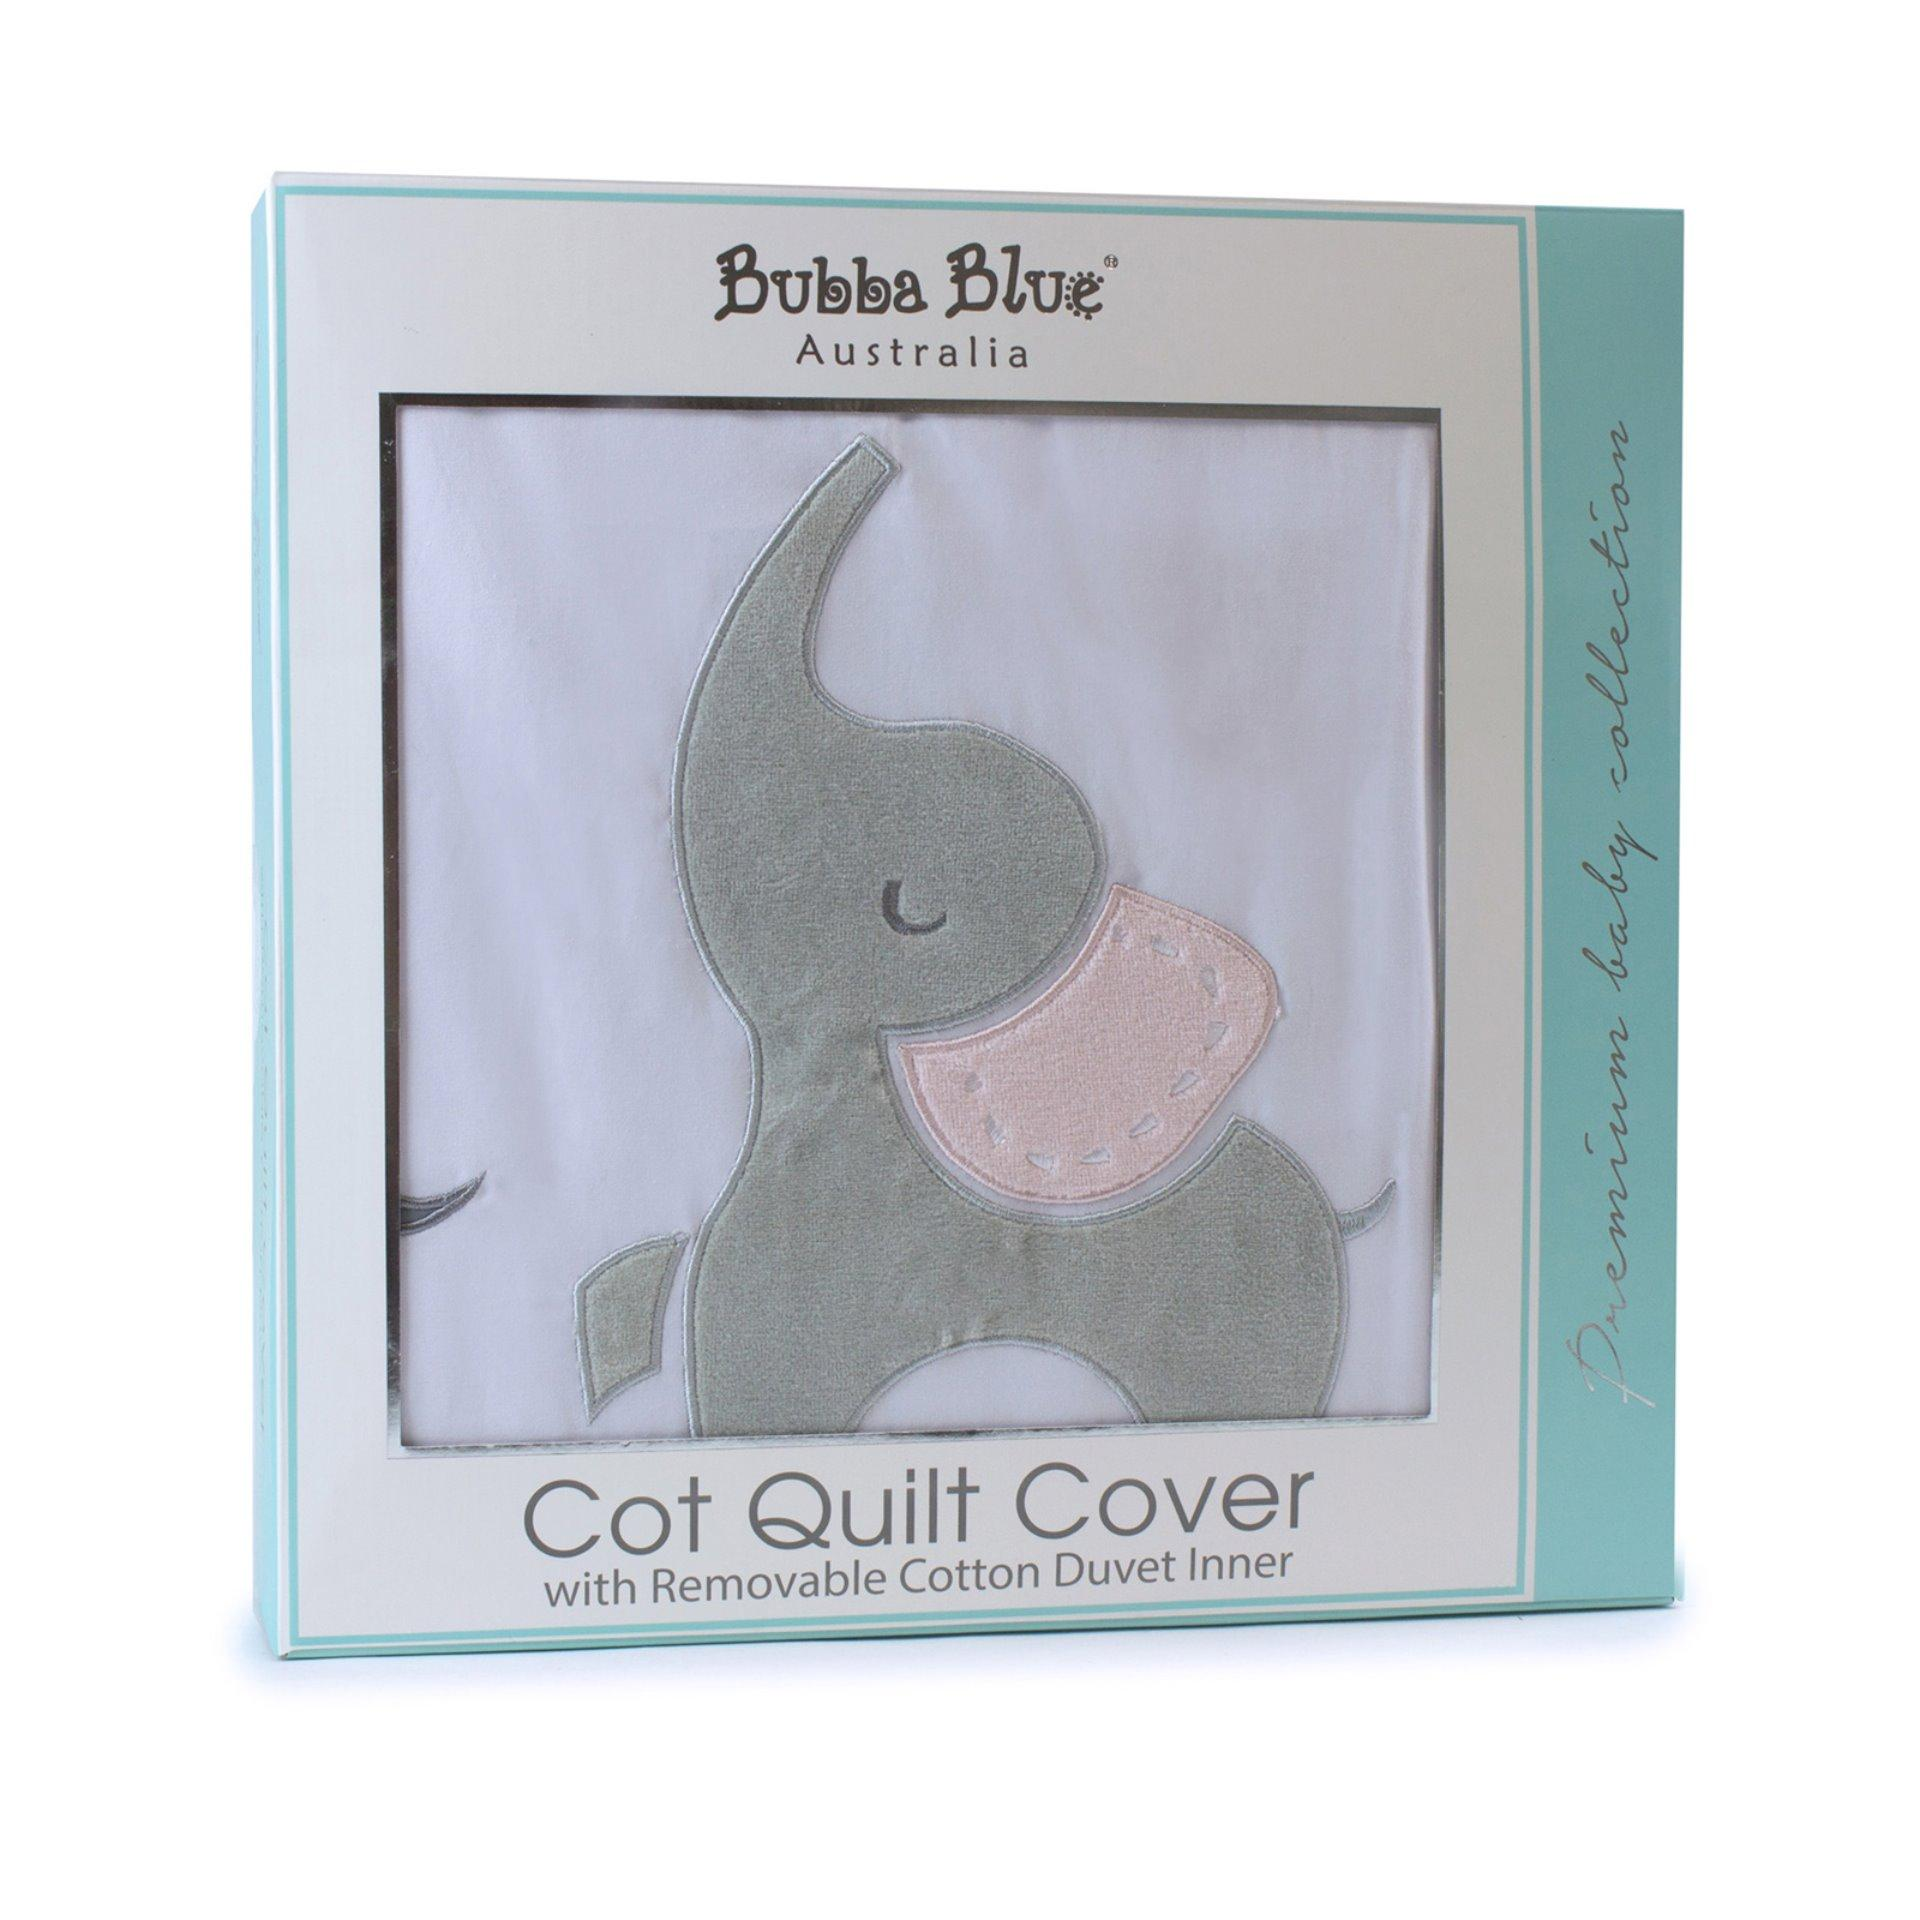 Bubba Blue Girl Zoofari Cot Quilt Cover with duvet